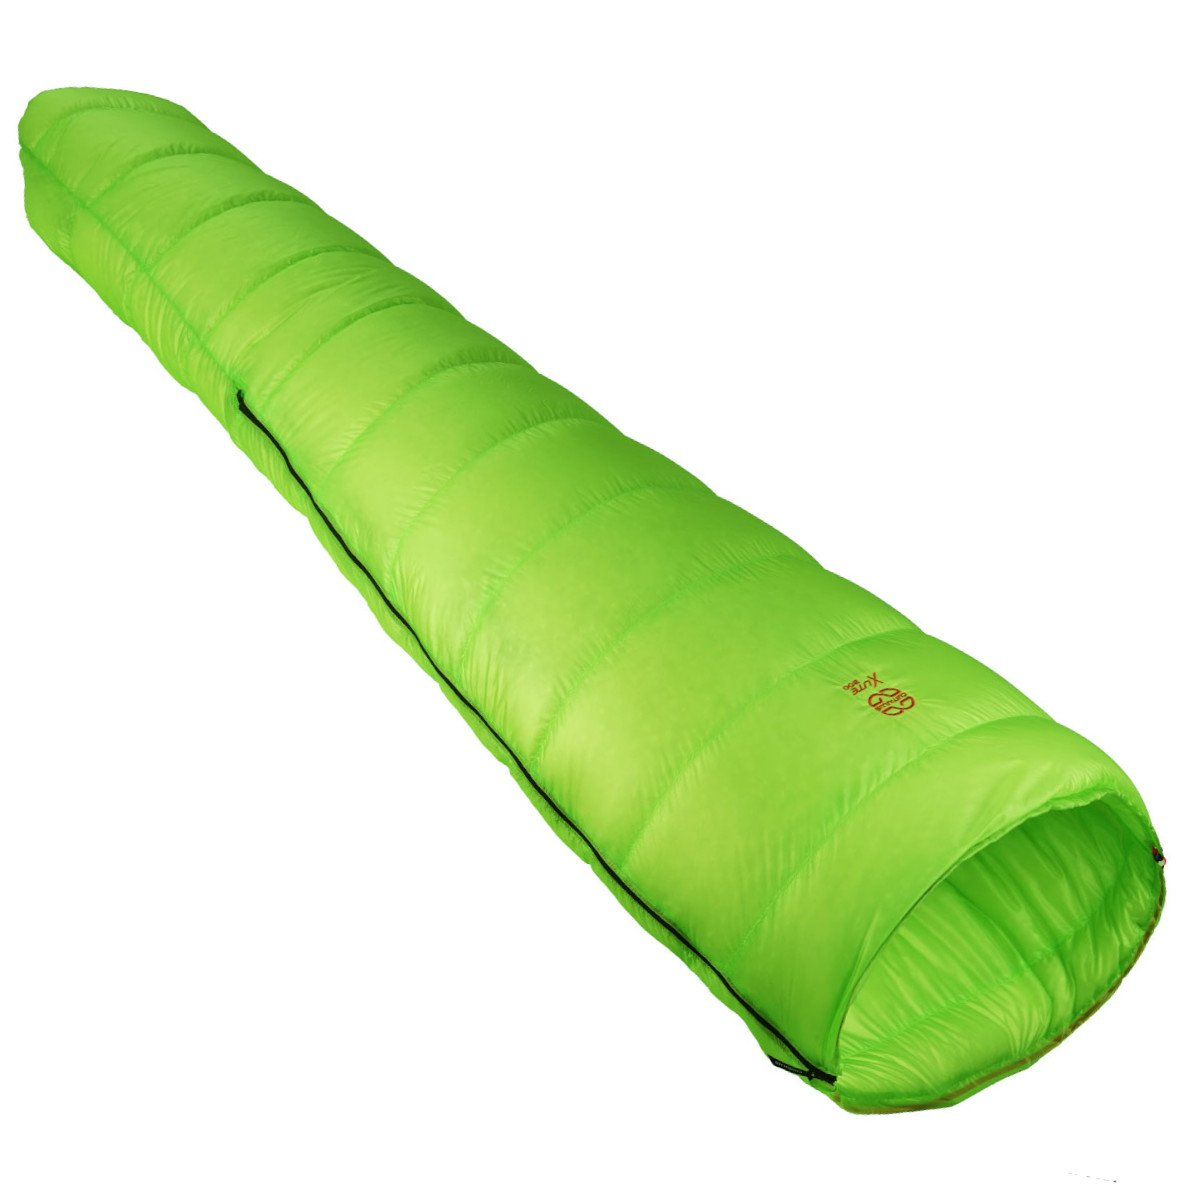 Cumulus X-Lite 200 sleeping bag, shown fully flat and closed in green colour